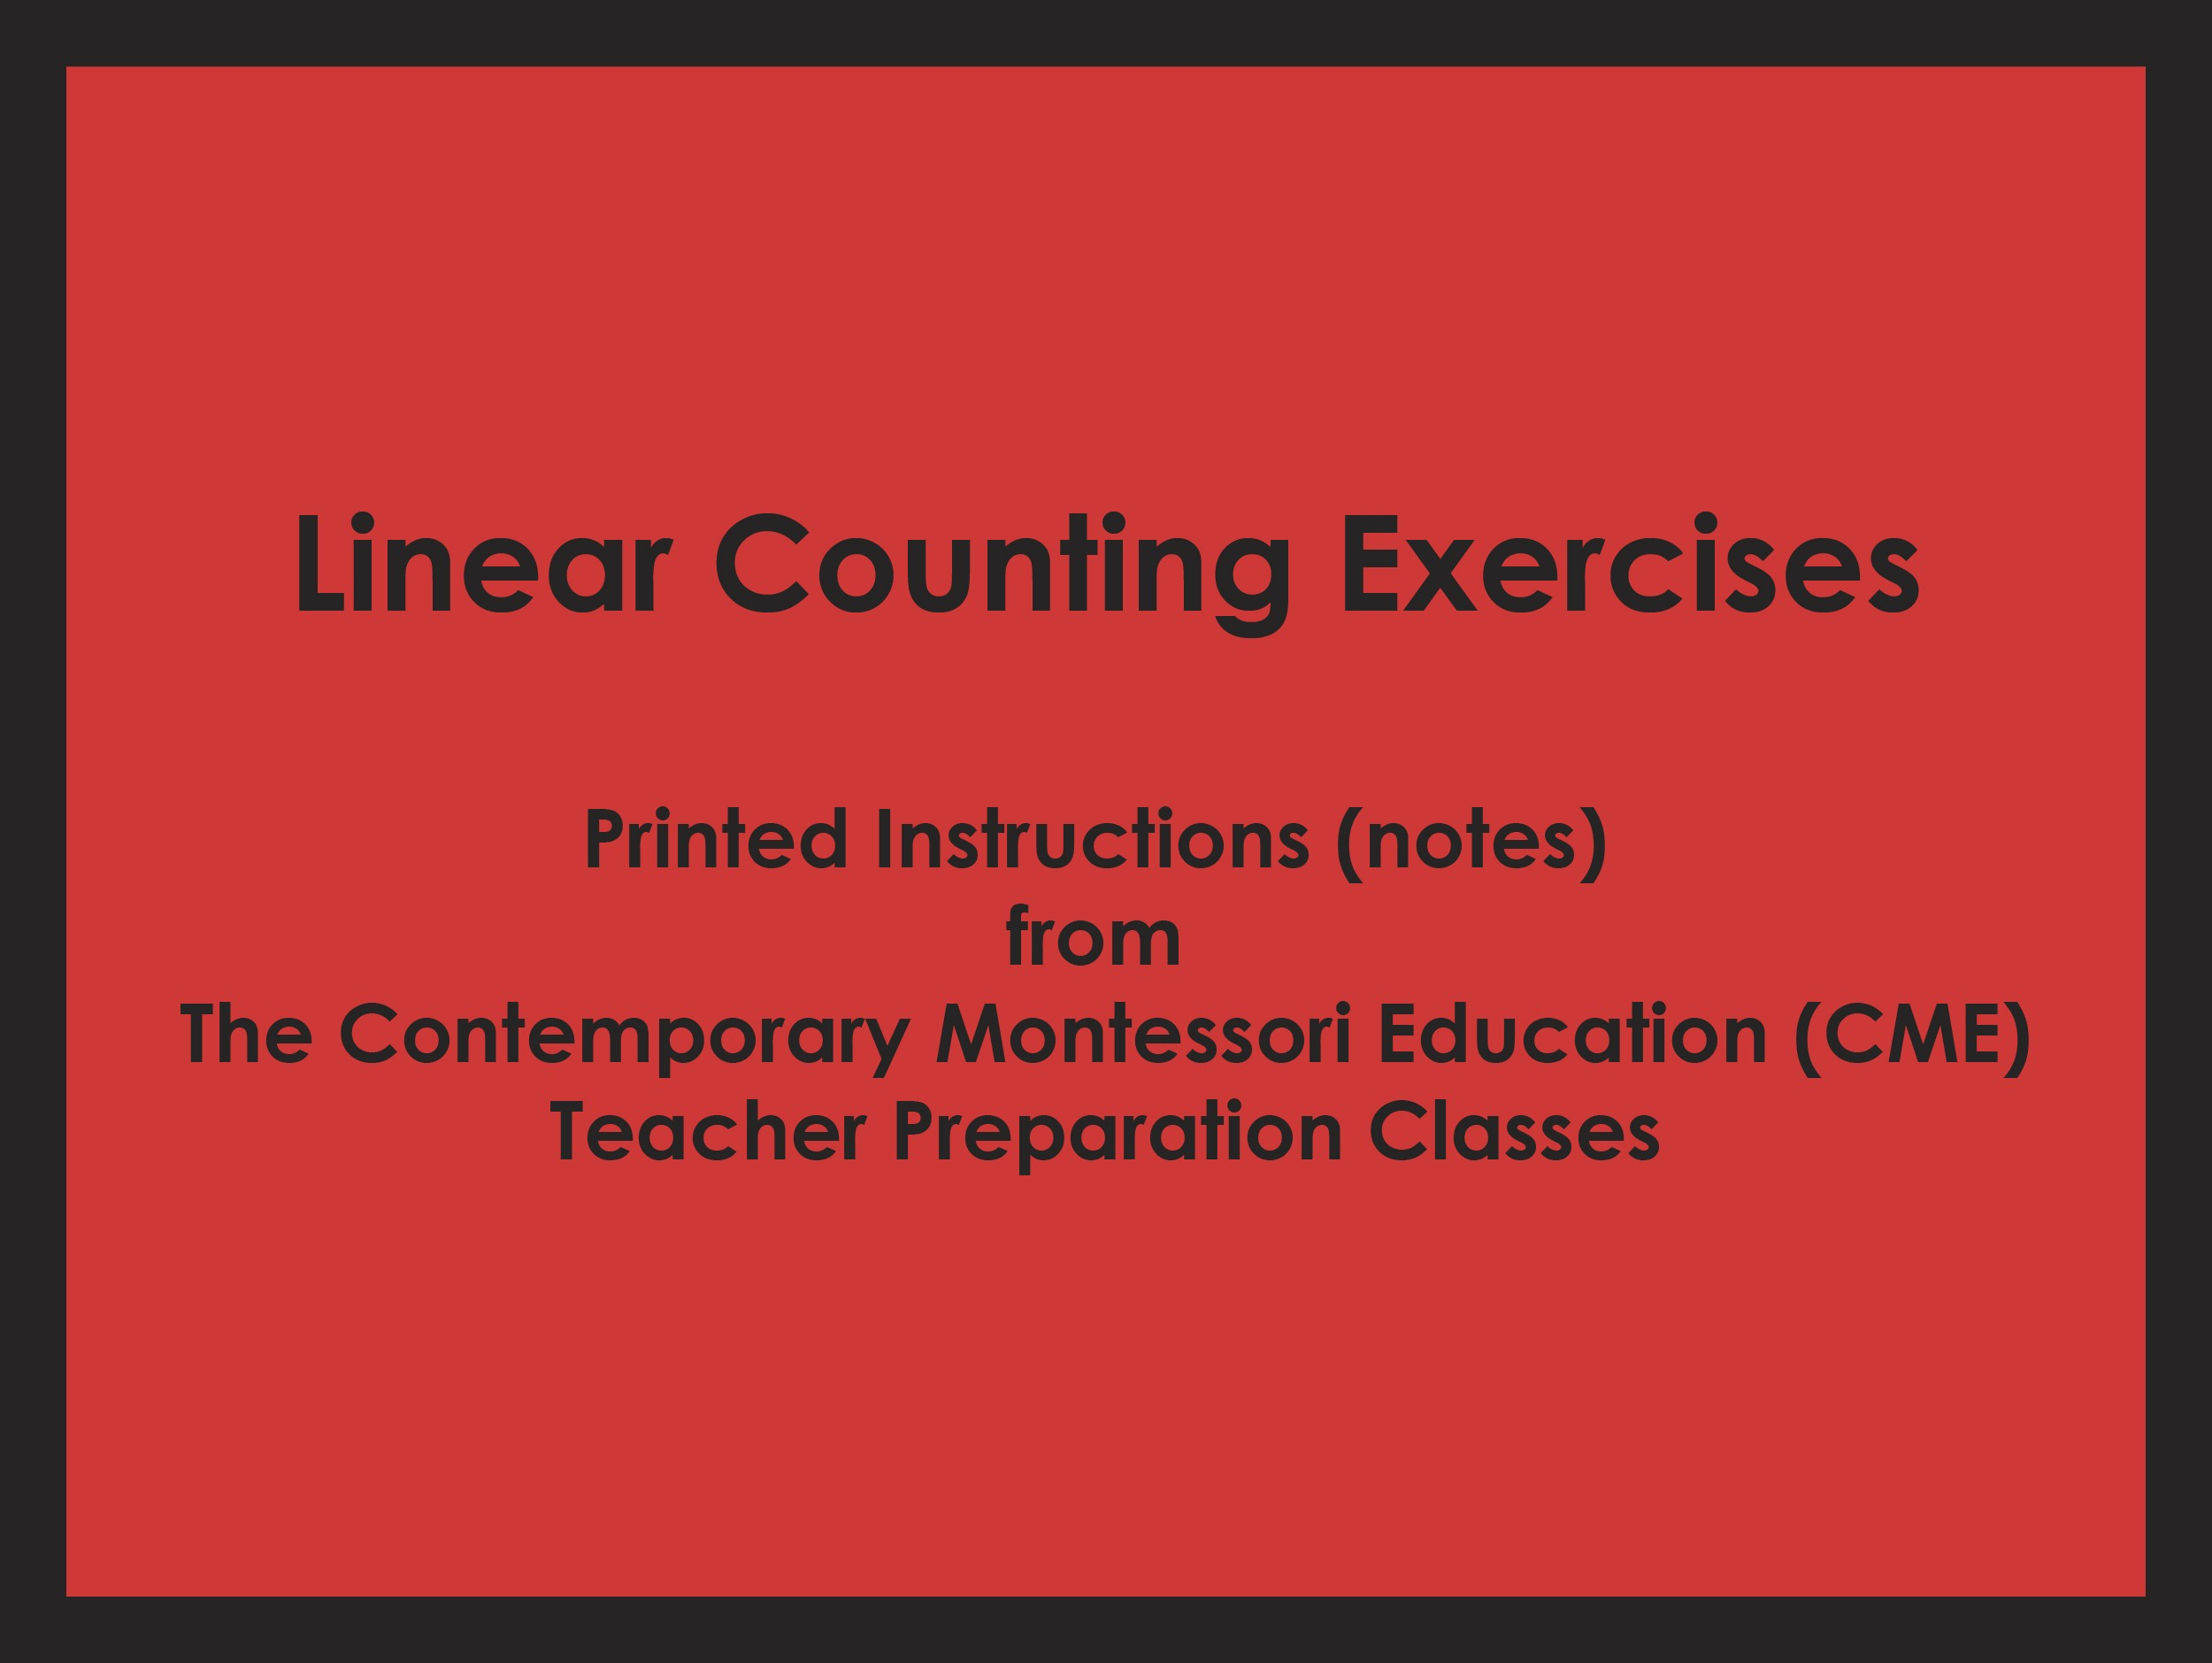 Linear Counting Exercises (CME notes) ○ MATH-CME-108